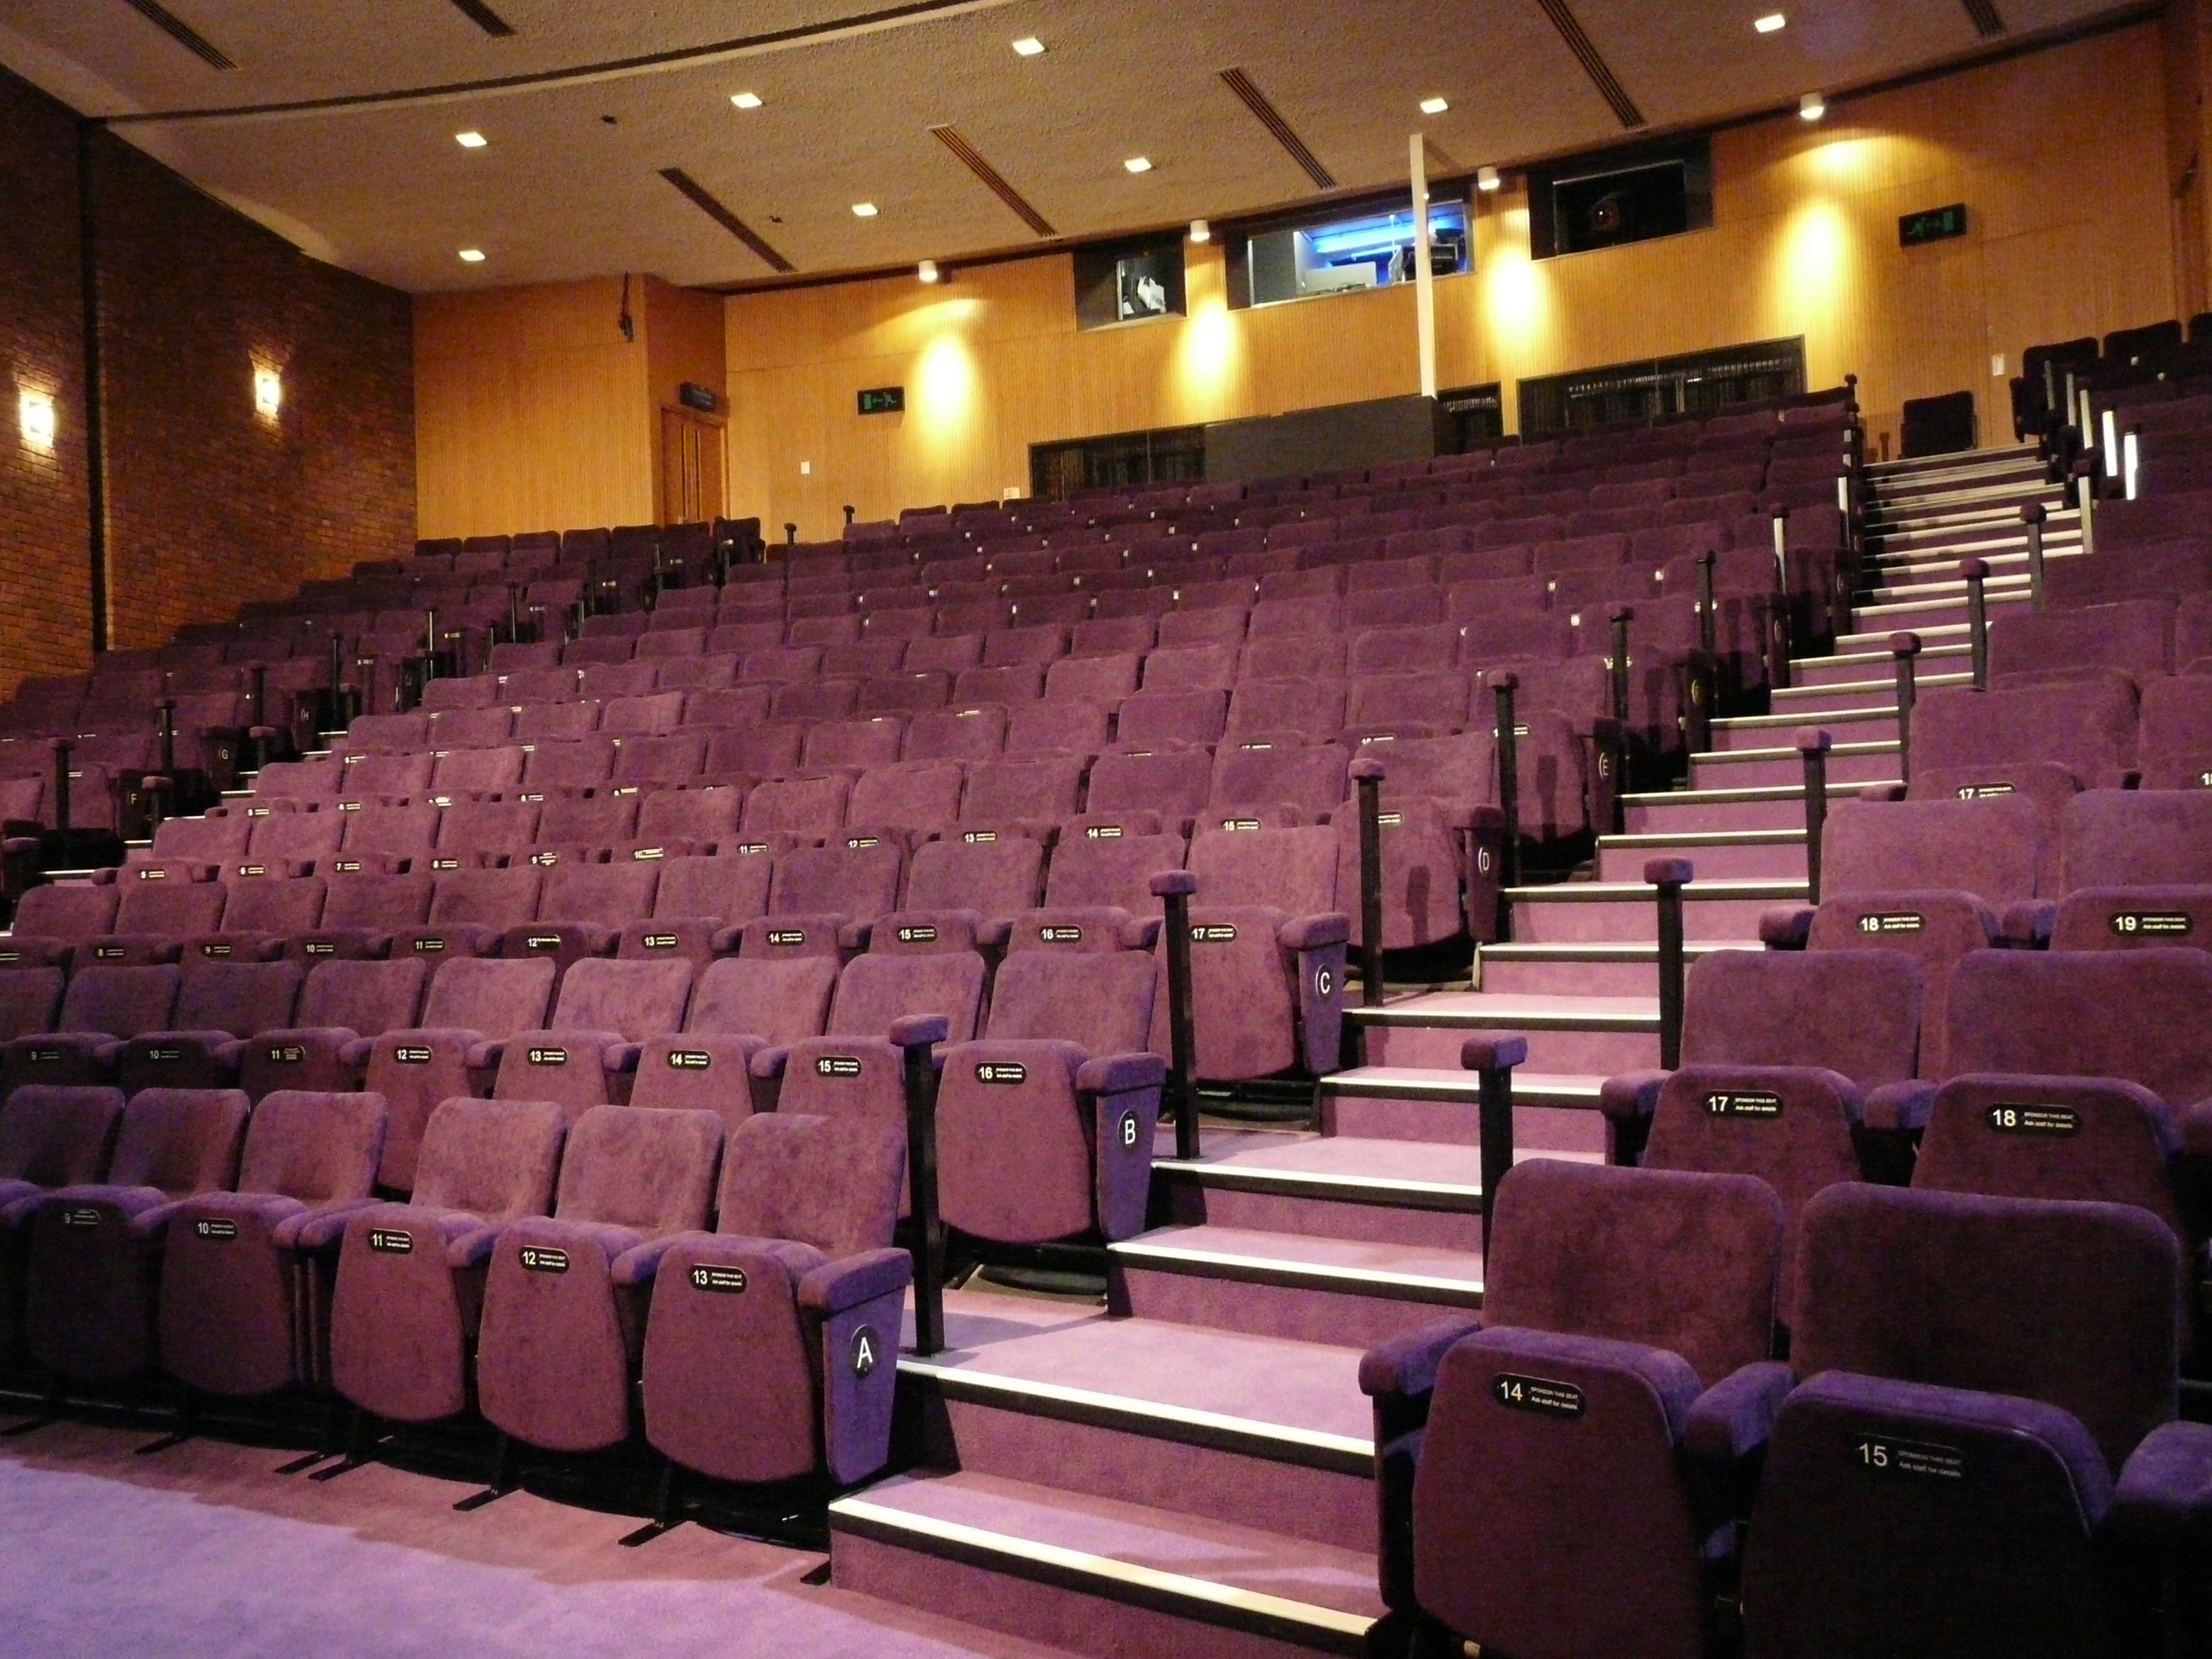 Evertaut Orion Theatre Seating in auditorium at The Core Theatre